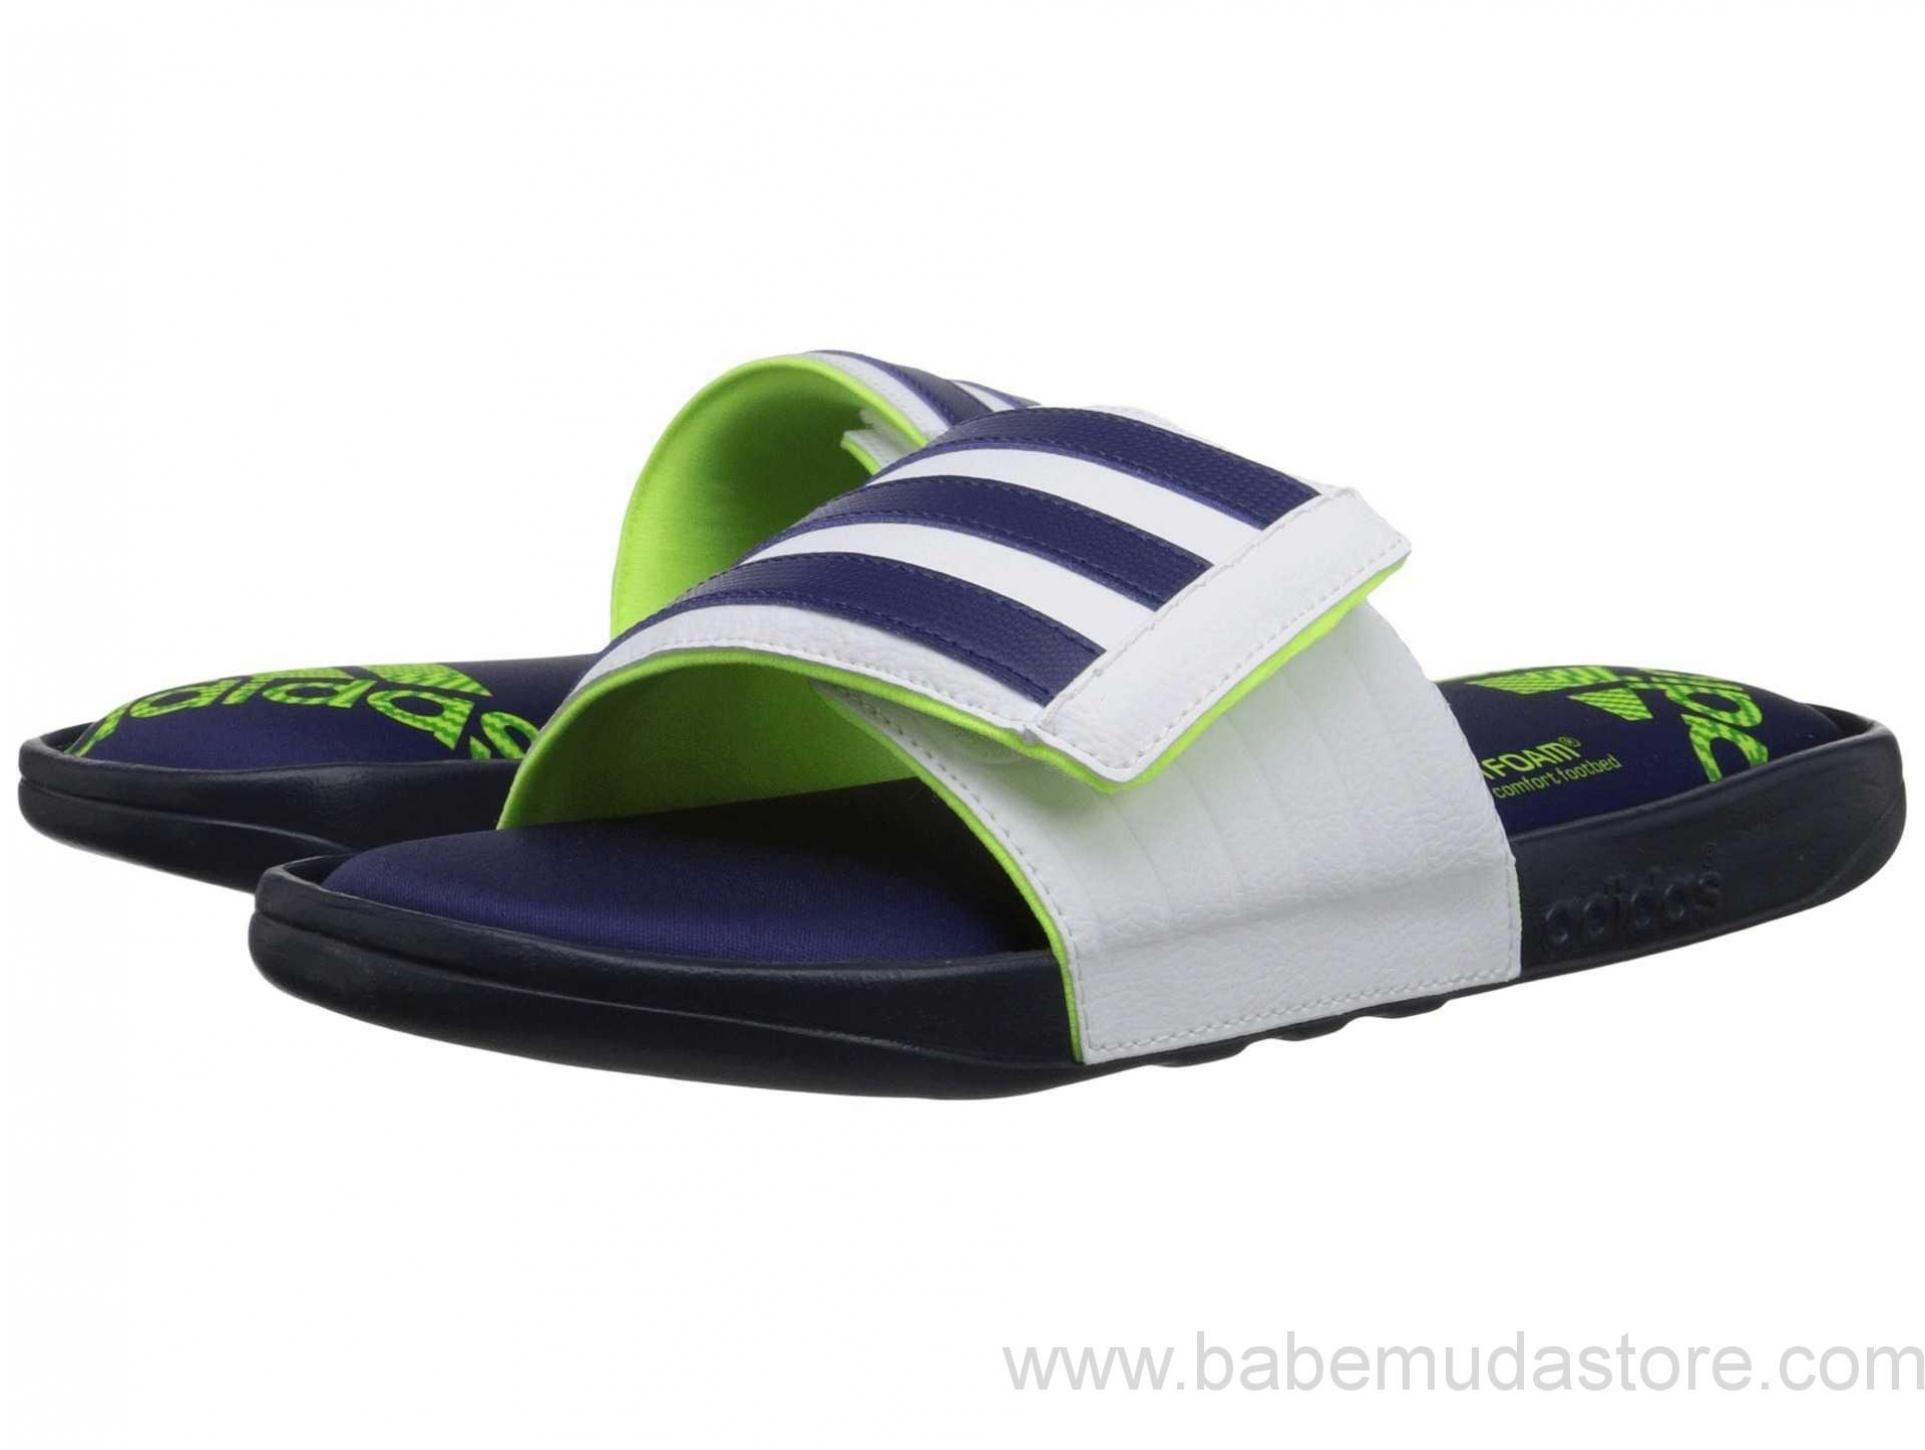 Mens Sandals adidas Adissage Comfort FF Collegiate Navy/Midnight Indigo/White